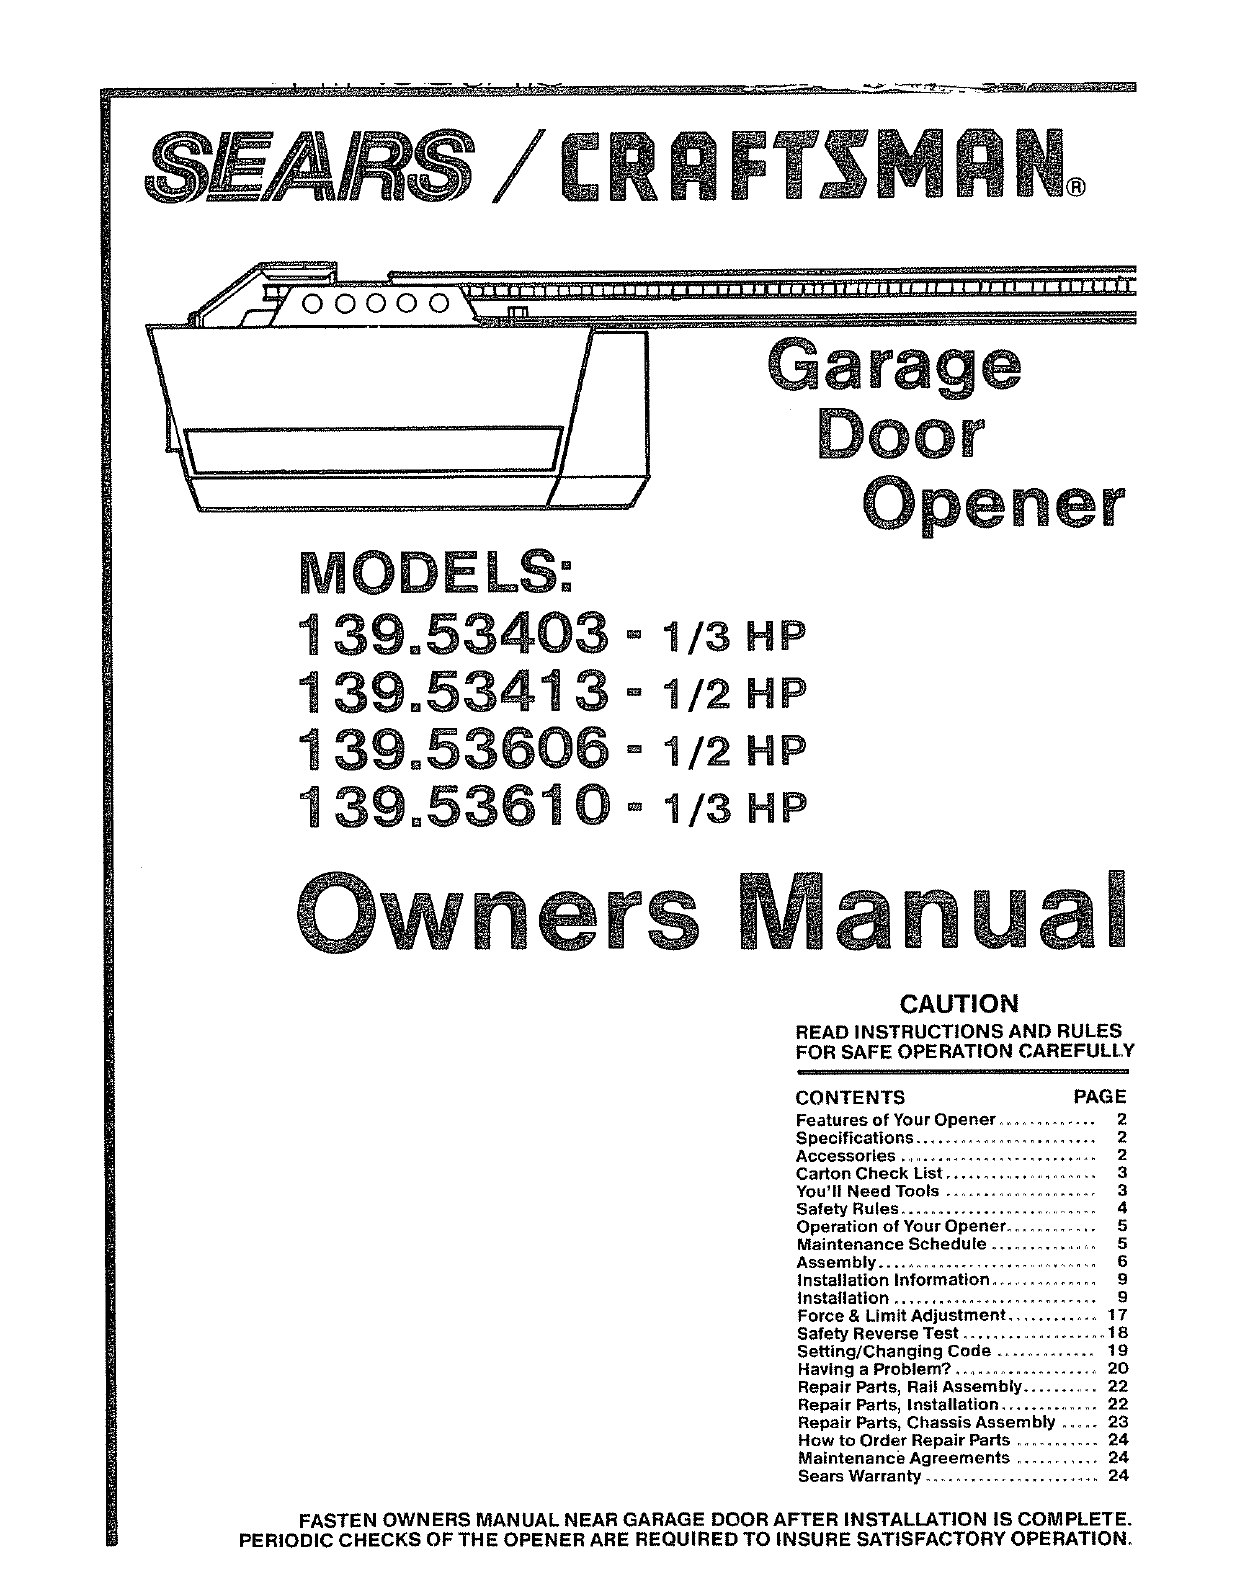 craftsman garage door opener wiring diagram Collection-139 5361 OD 20-i